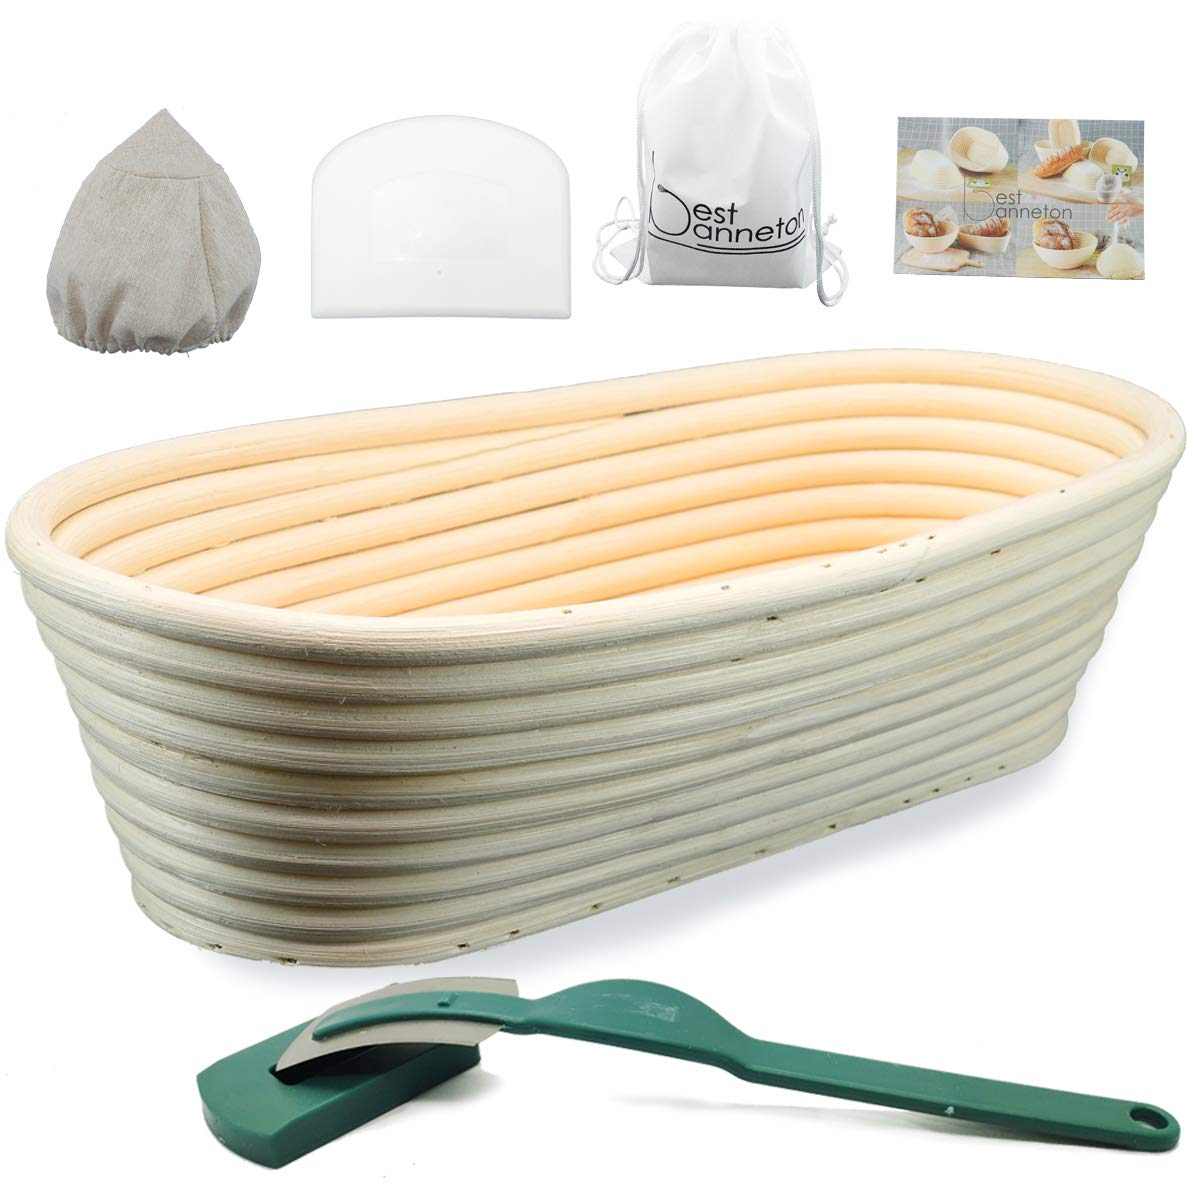 11 Inch Oval Bread Proofing Basket .Banneton proofing basket .Bread Basket+Bread lame+Dough Scraper +Proofing Cloth Liner for Sourdough Bread Baking Tools for Home Baker by Best Banneton